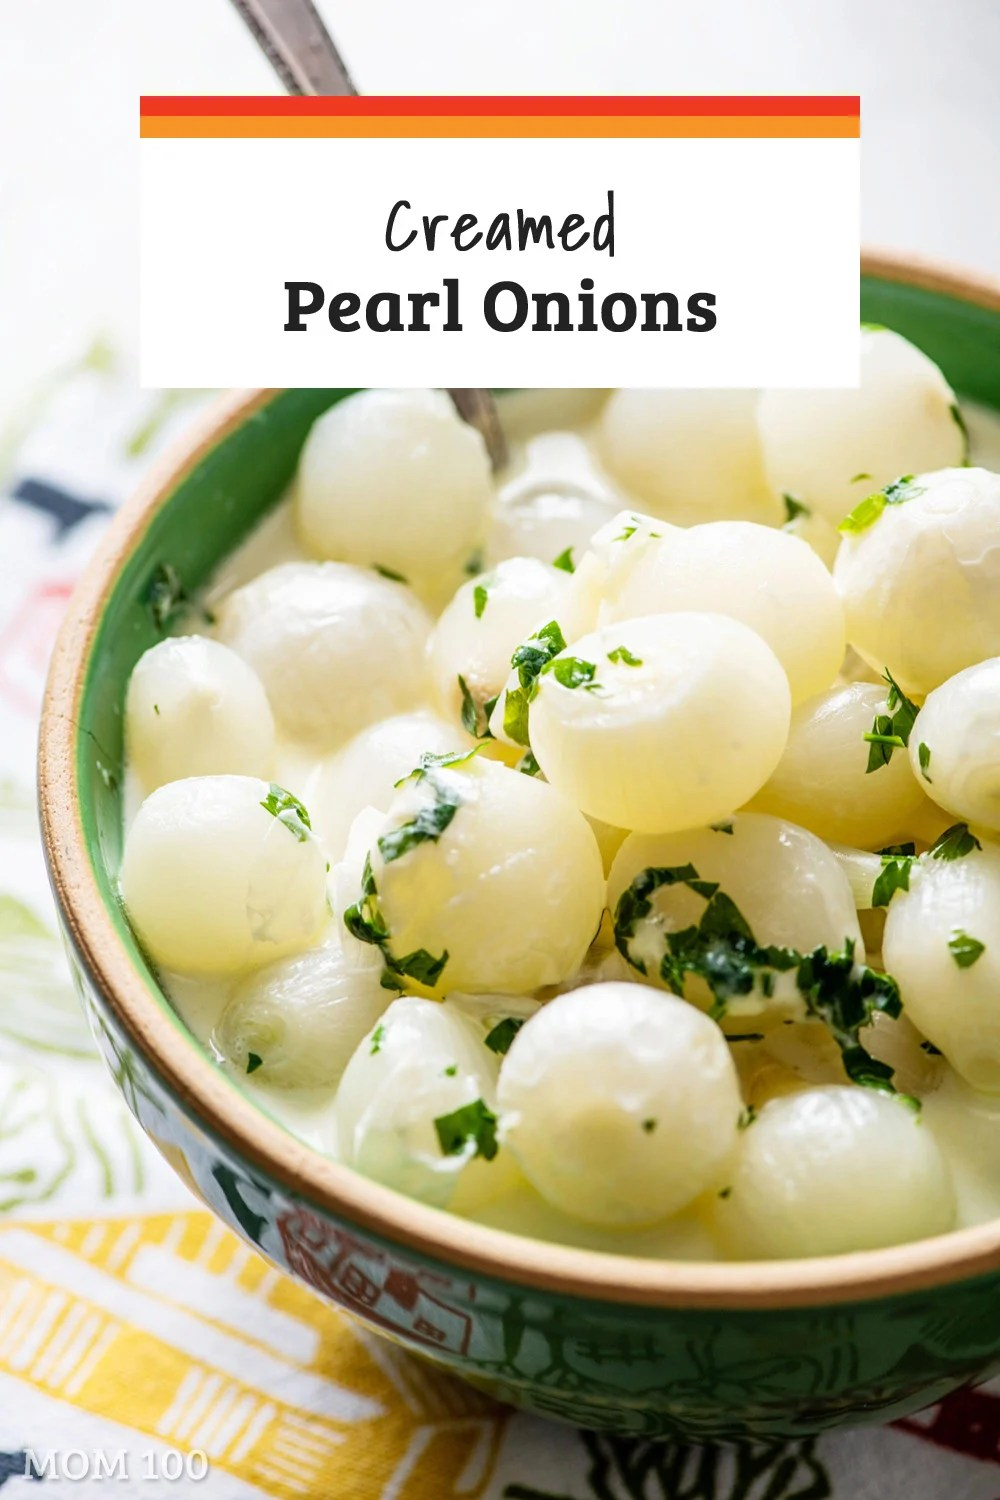 Creamed Pearl Onions / This classic side dish belongs on any holiday table. It is easy to make and pairs perfectly with turkey, rib roasts, leg of lamb, and more. #sidedish